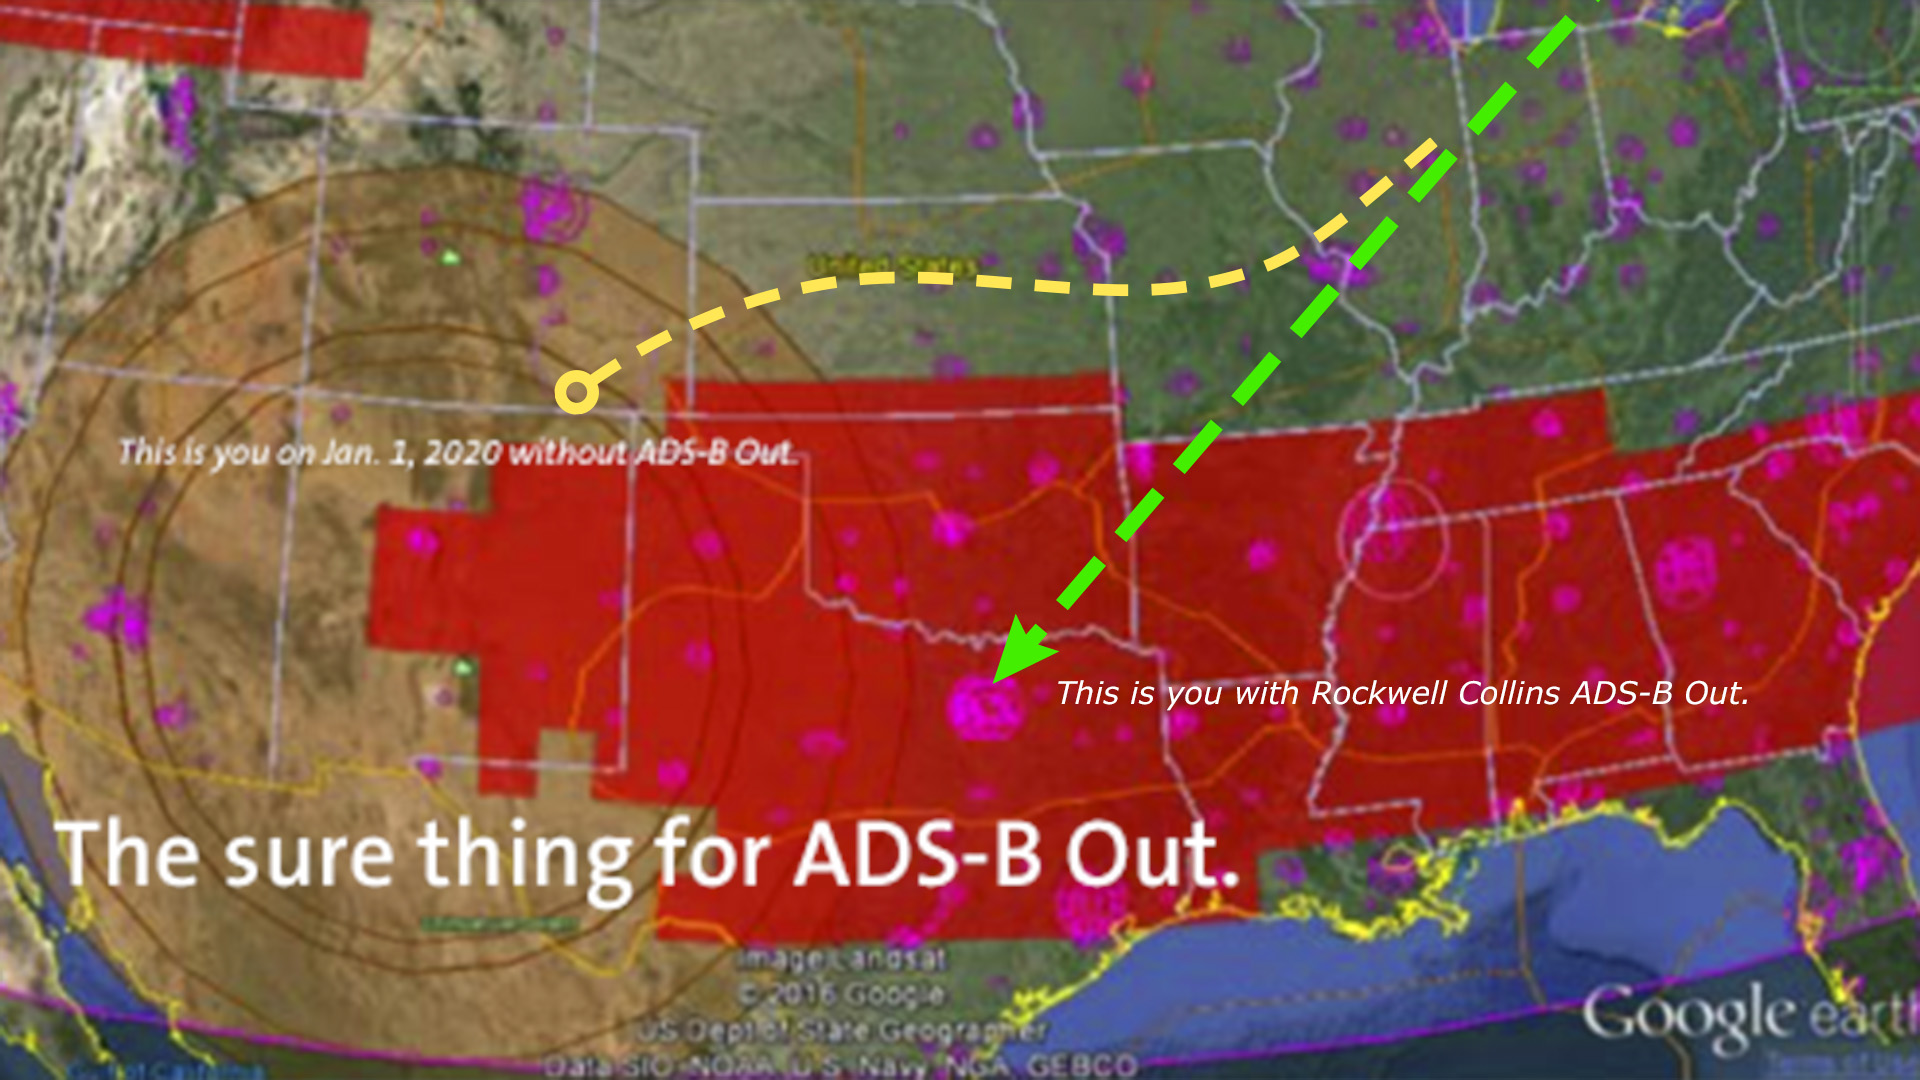 The sure thing for ADS-B Out